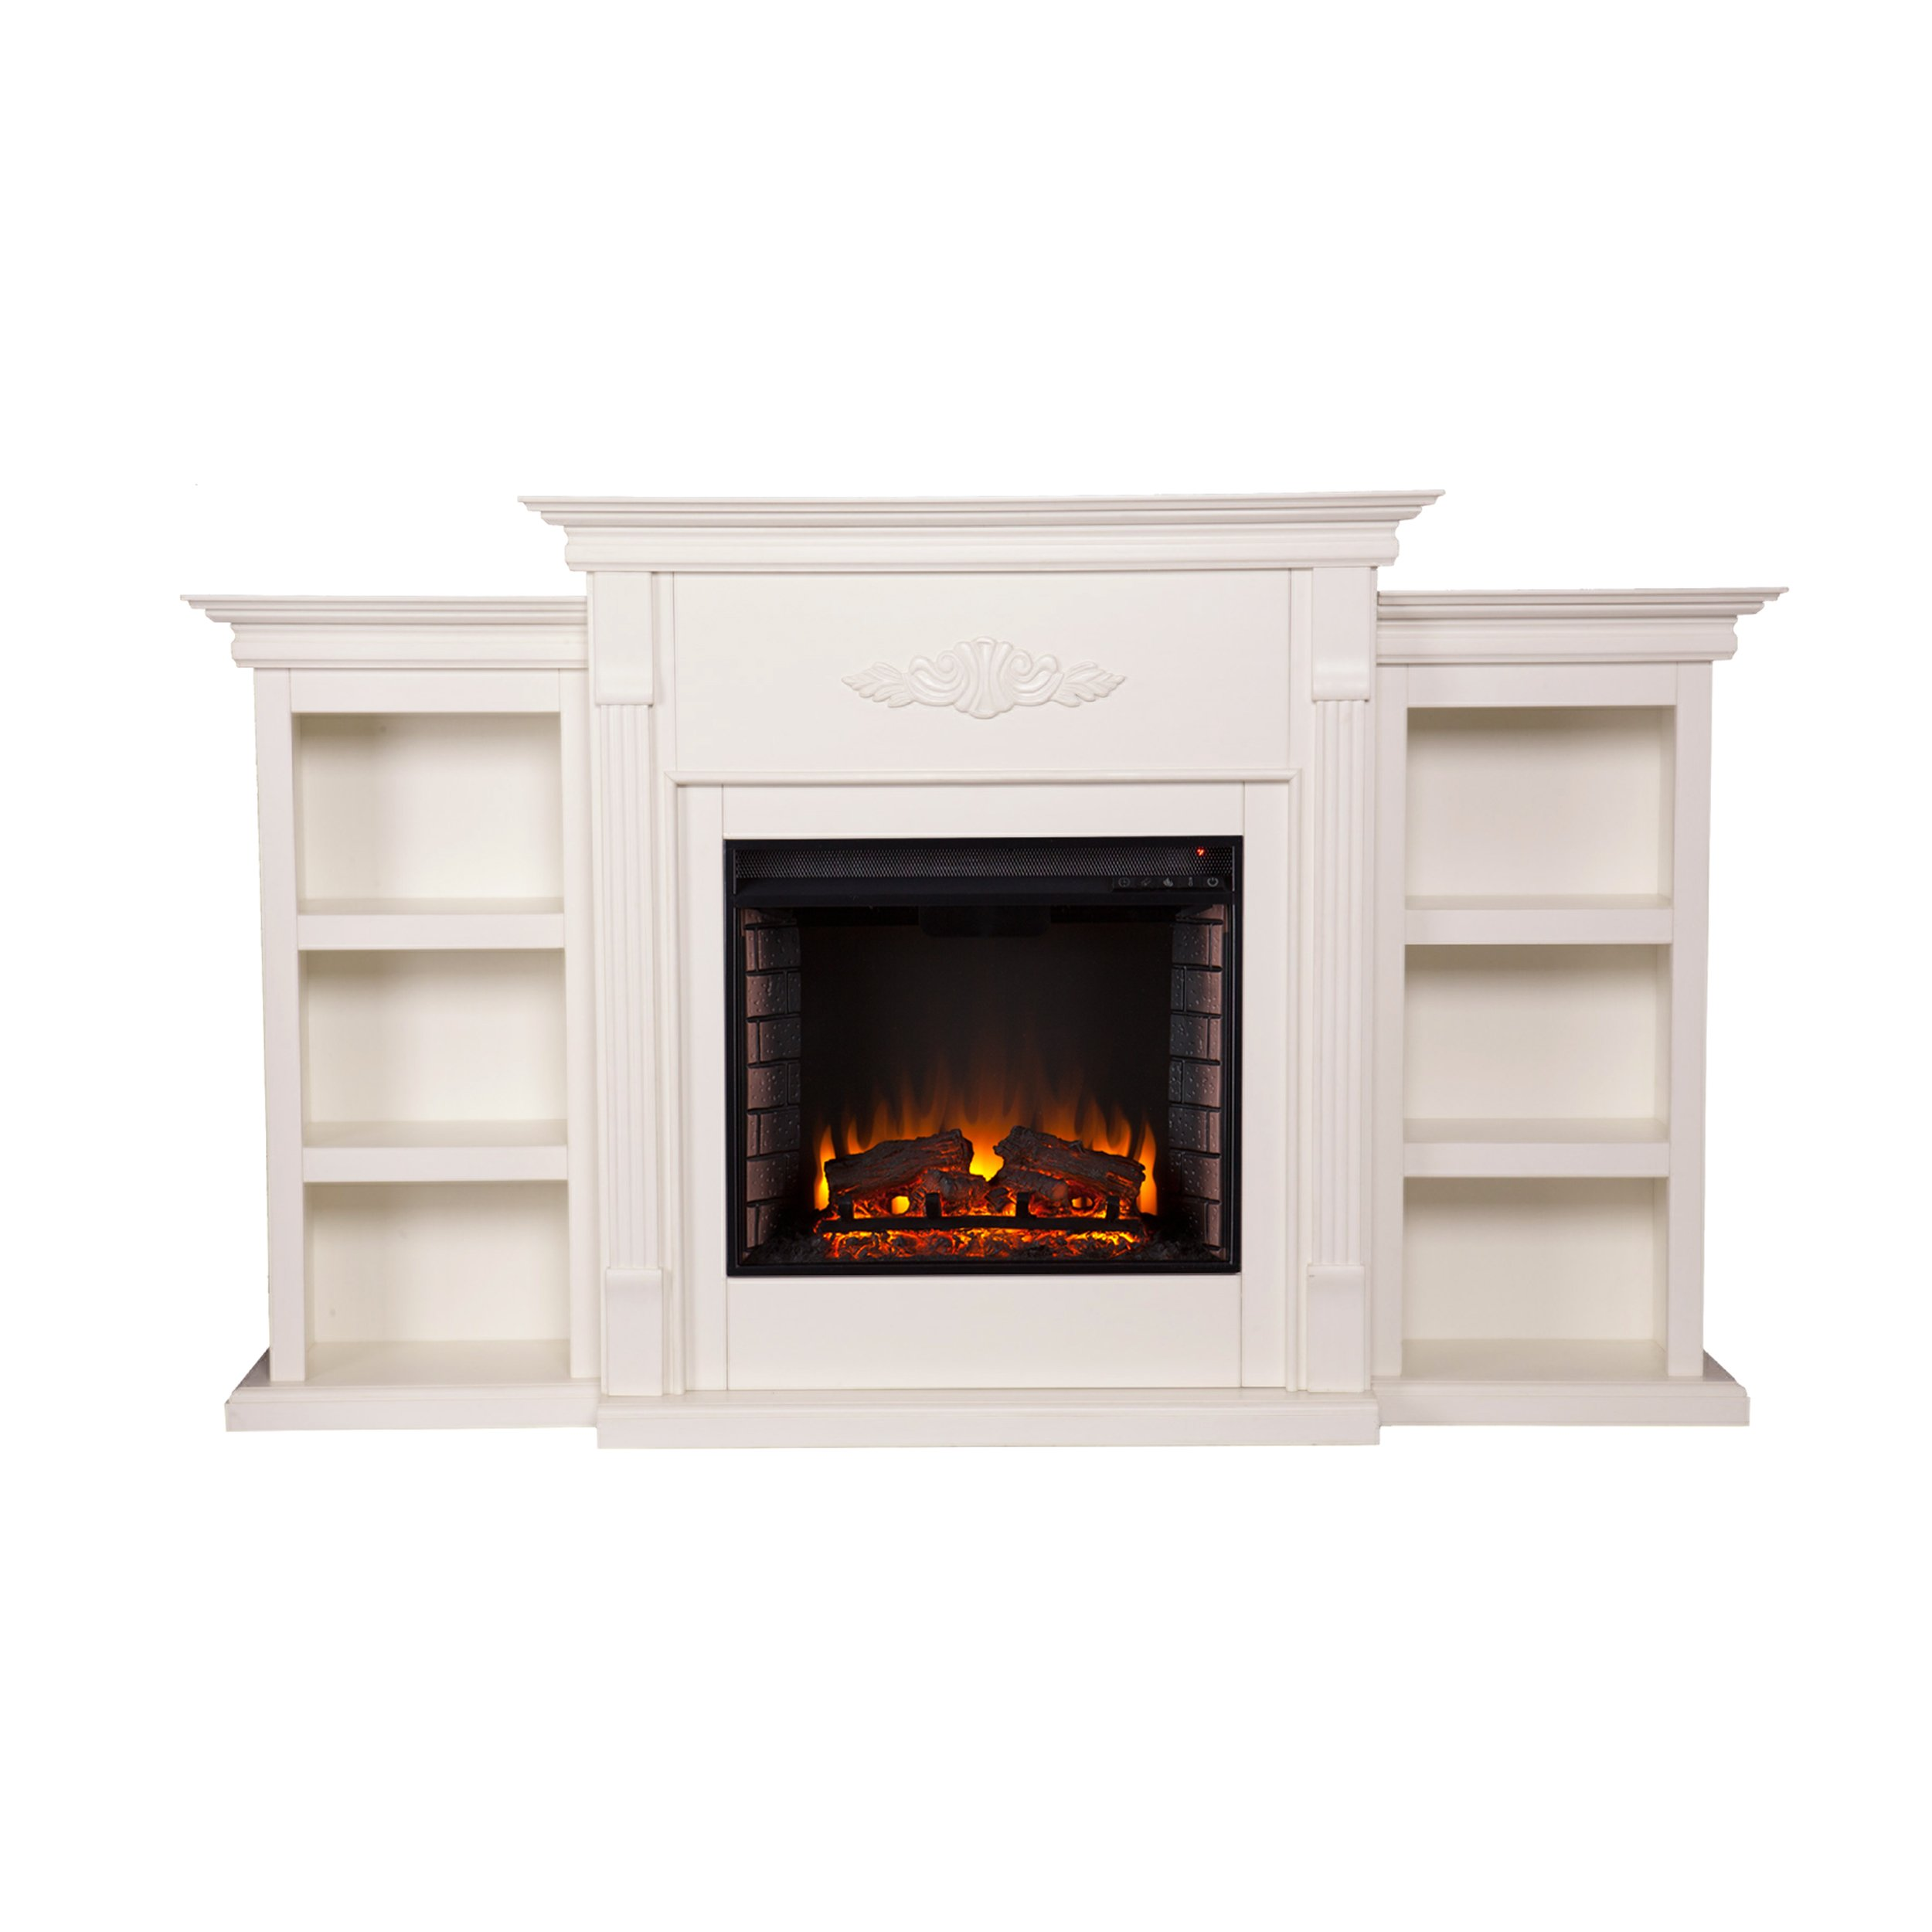 Tennyson Electric Fireplace w/ Bookcases - Ivory by Southern Enterprises